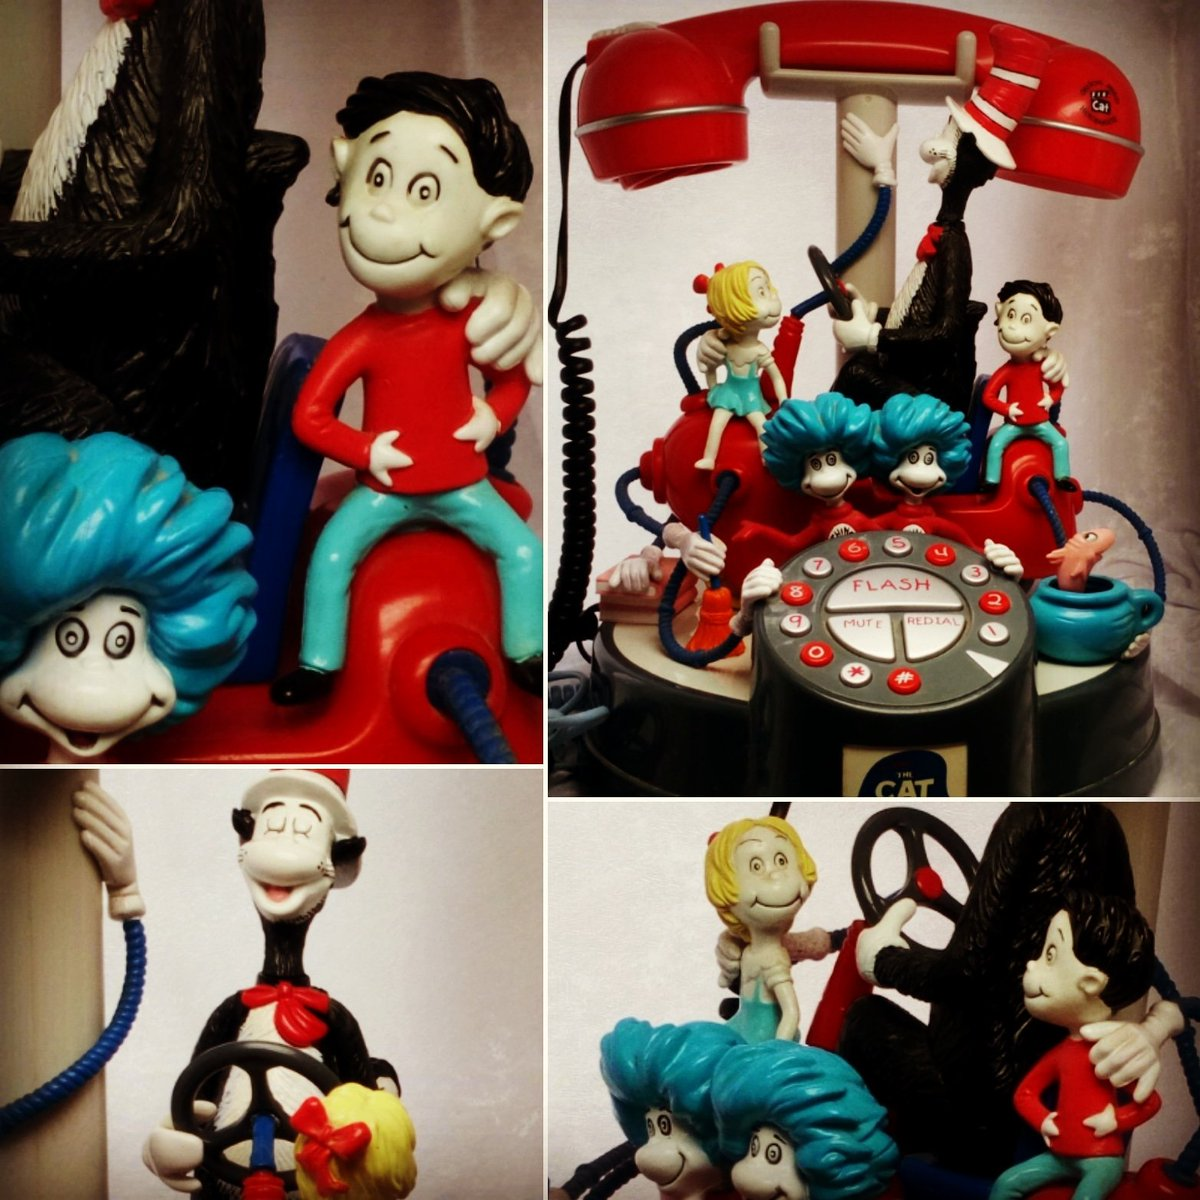 100 Cells Vintage On Twitter Drseuss Thecatinthehat Telephone 2003 Official Noveltyphone Mikemyers Only On My Ebay Shop See Https T Co Vfifrnffs5 Ebay Etsy Etsyshop Ebayseller Ebayshop Vintage Collectables Collectibles Collectible